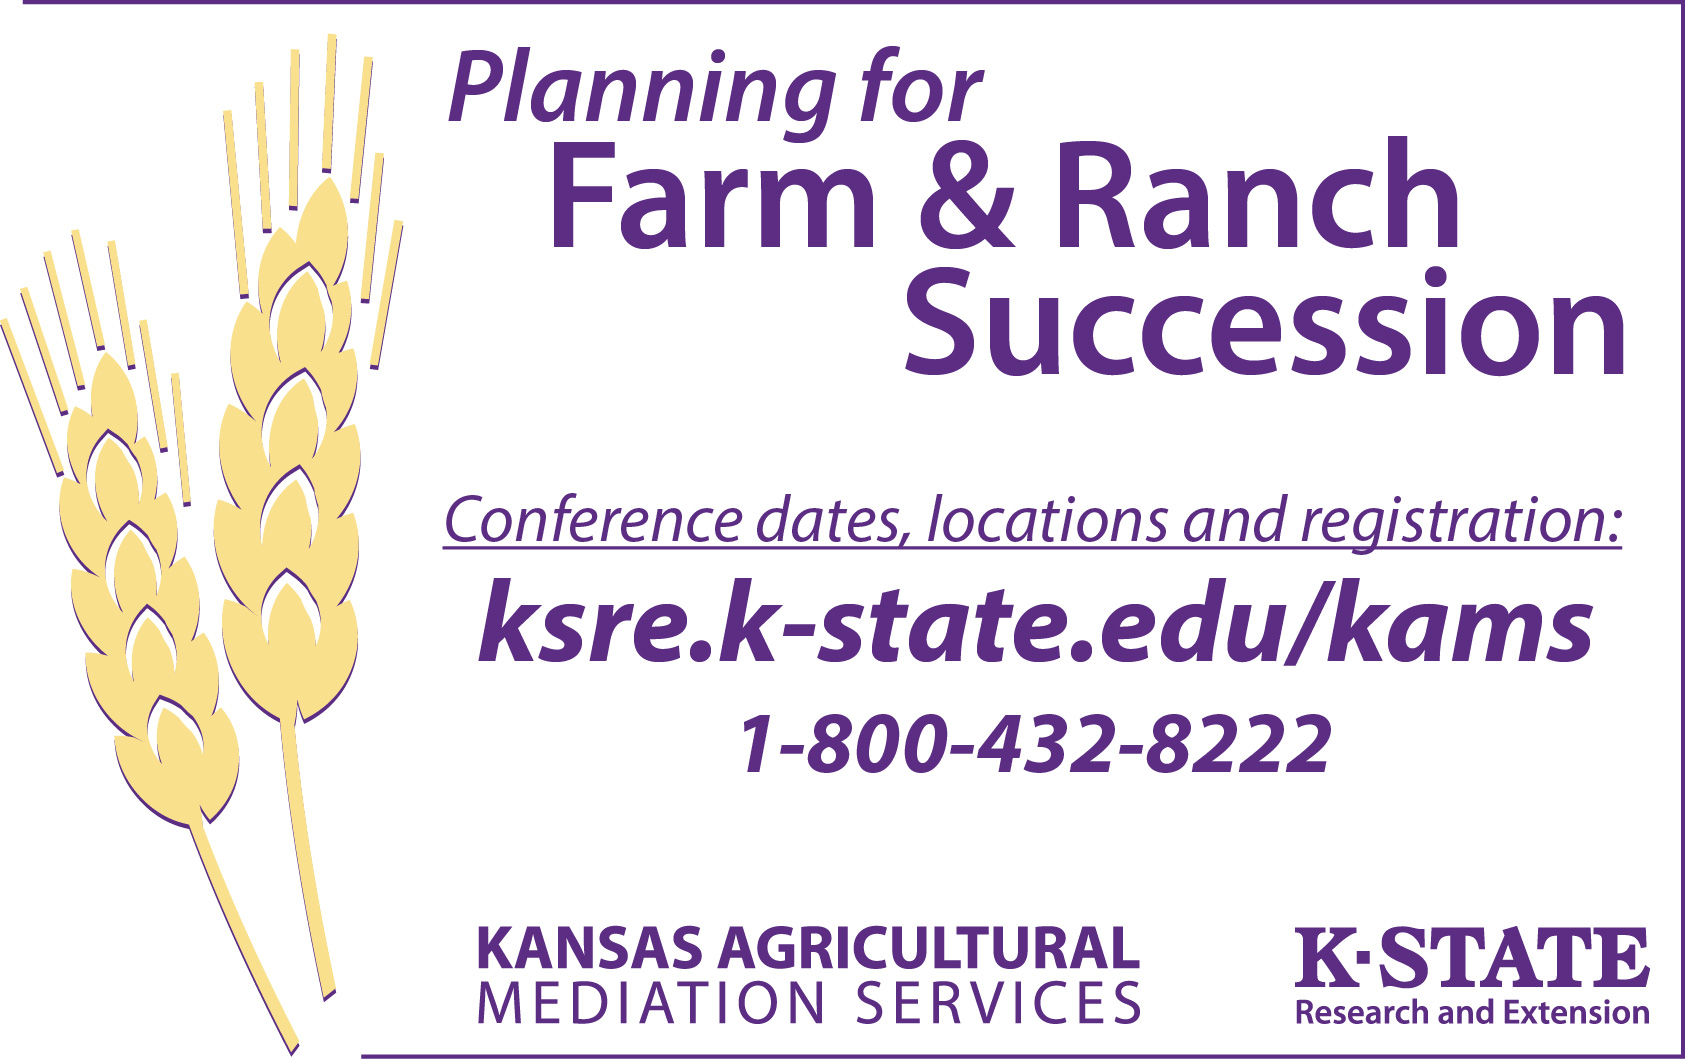 Planning for Farm & Ranch Succession Conferences